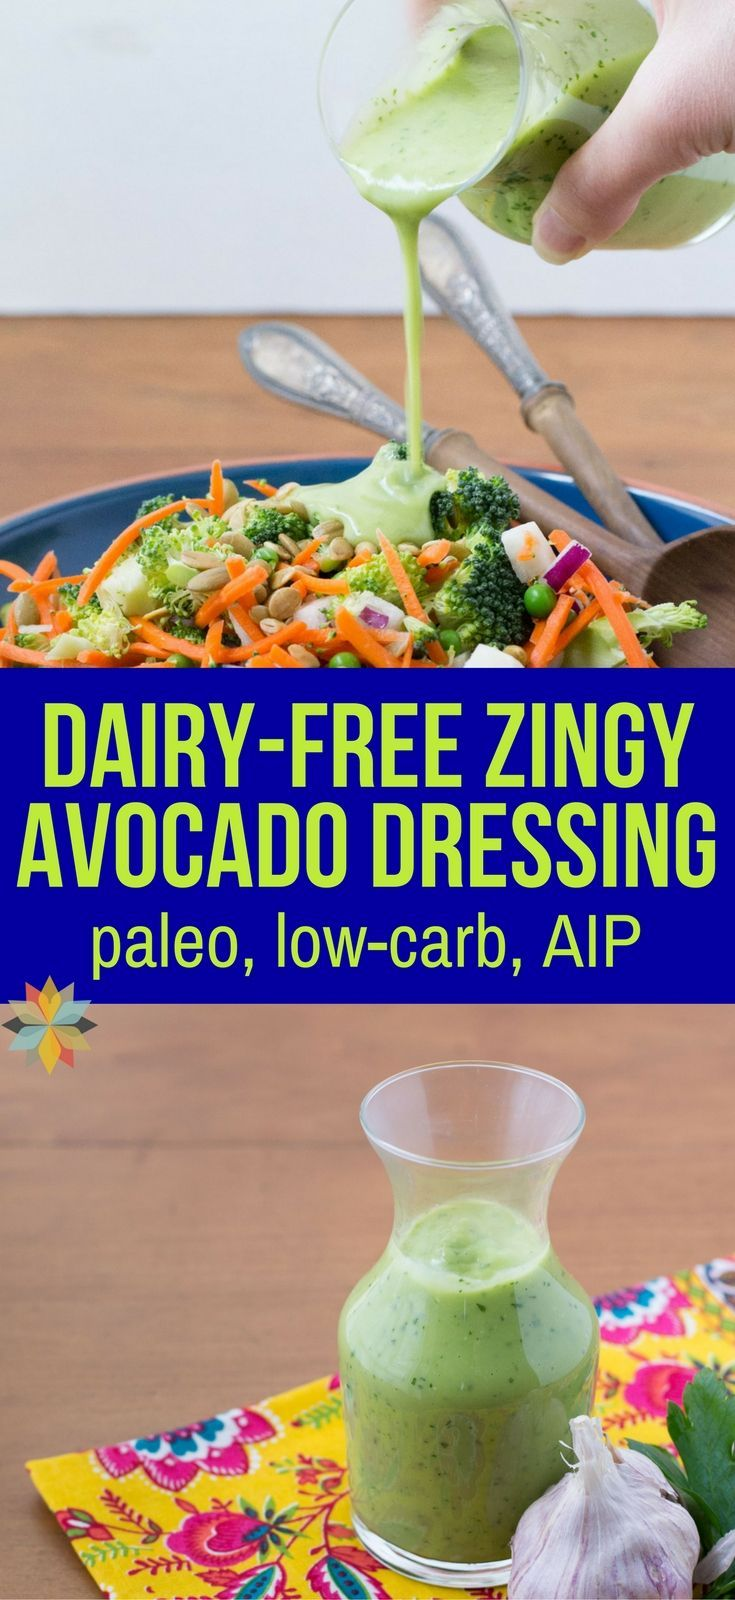 If you love avocados, you'll LOVE this Creamy Vegan Avocado Dressing Recipe - it's dairy-free, low carb, and AIP and makes a great dip too! via @wholenewmom